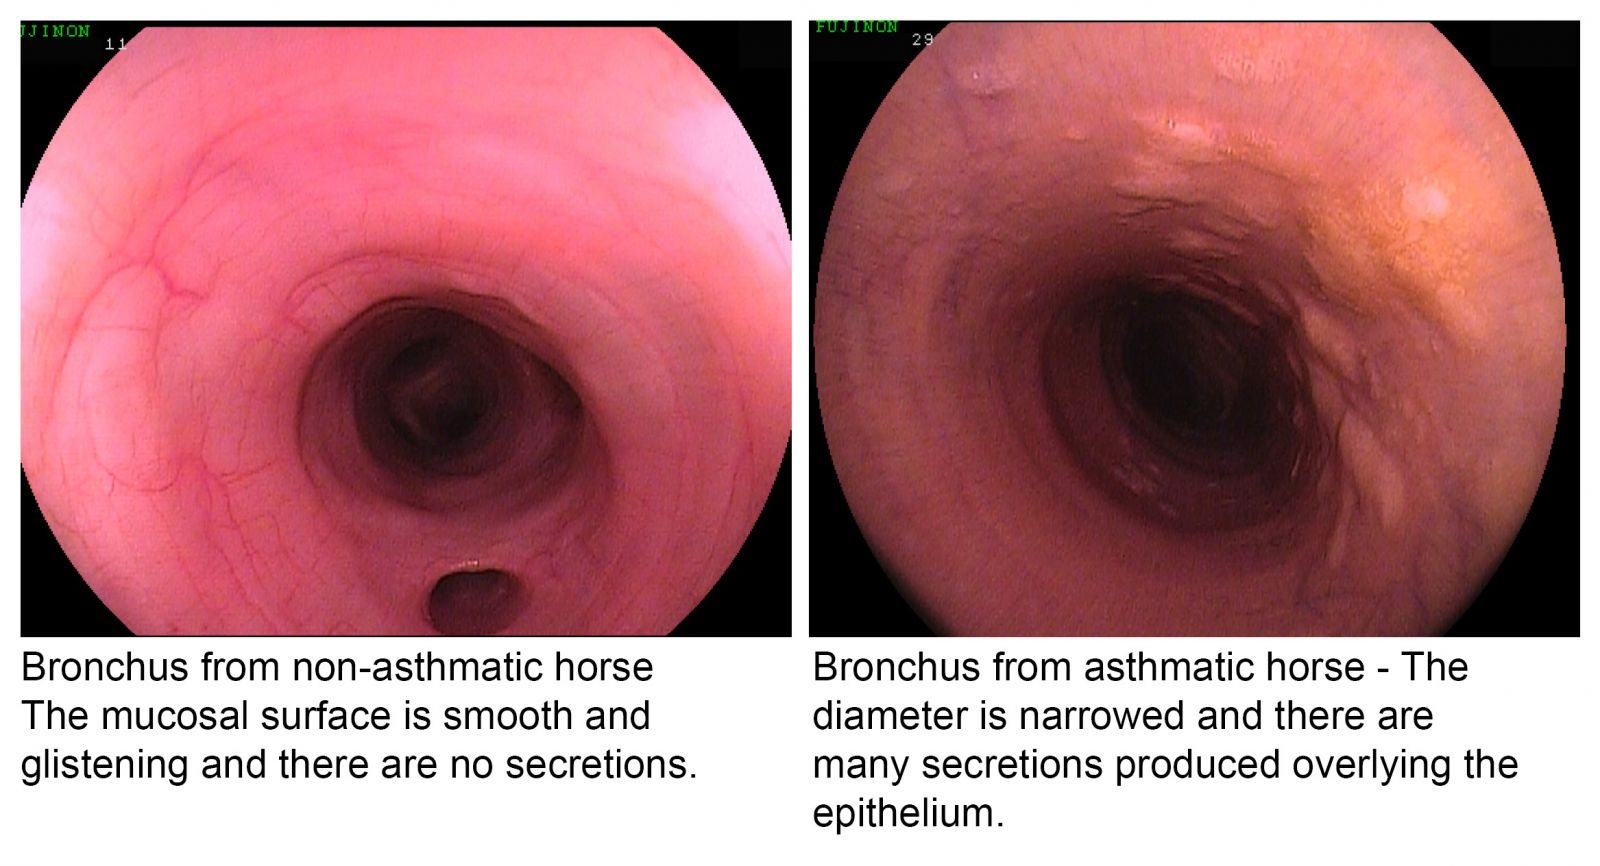 Scoping image of bronchus from asthmatic horse and non-asthmatic horse